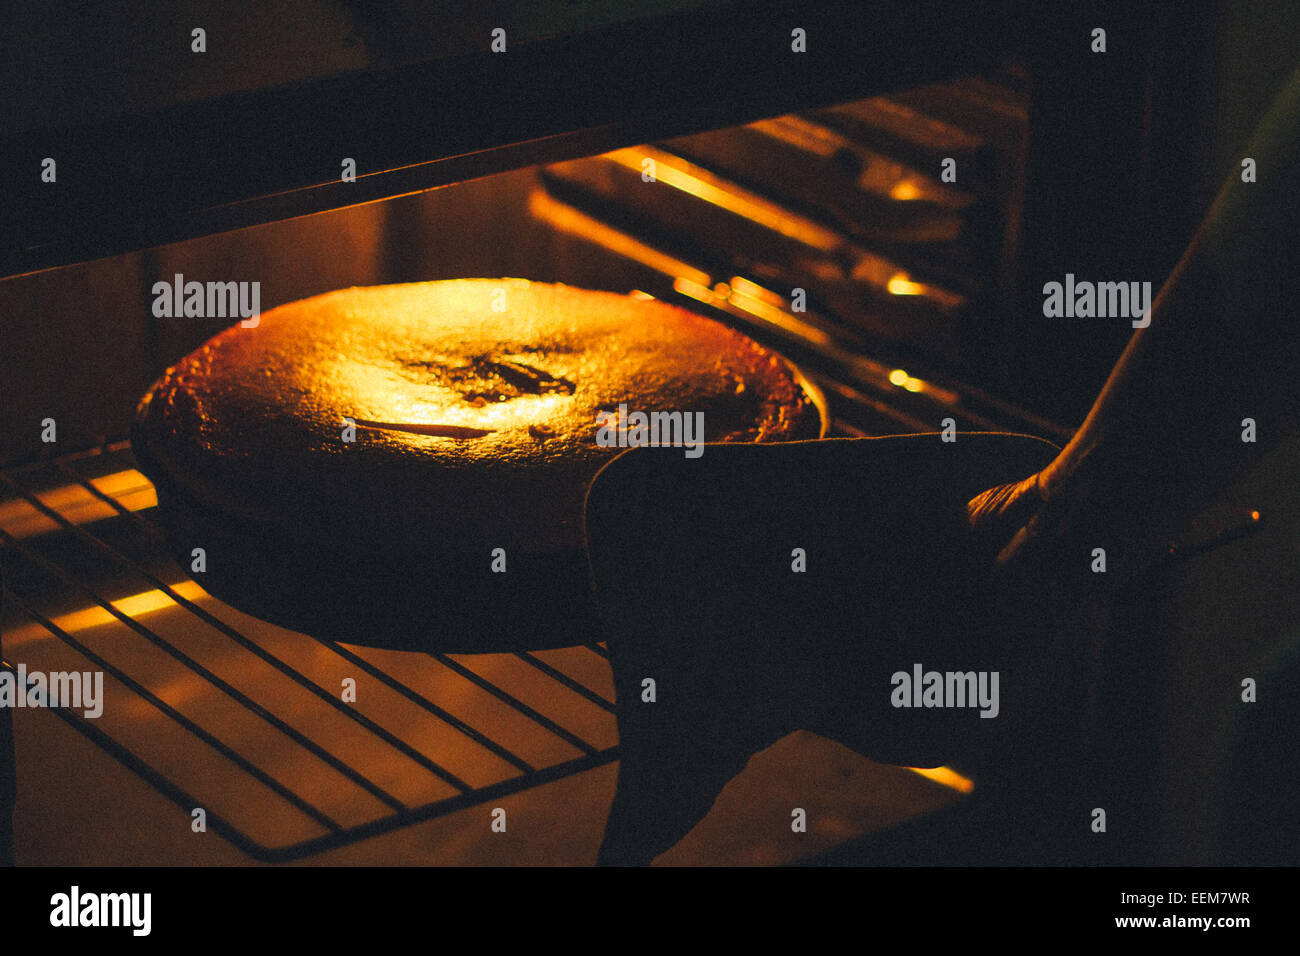 Woman baking cake in oven - Stock Image